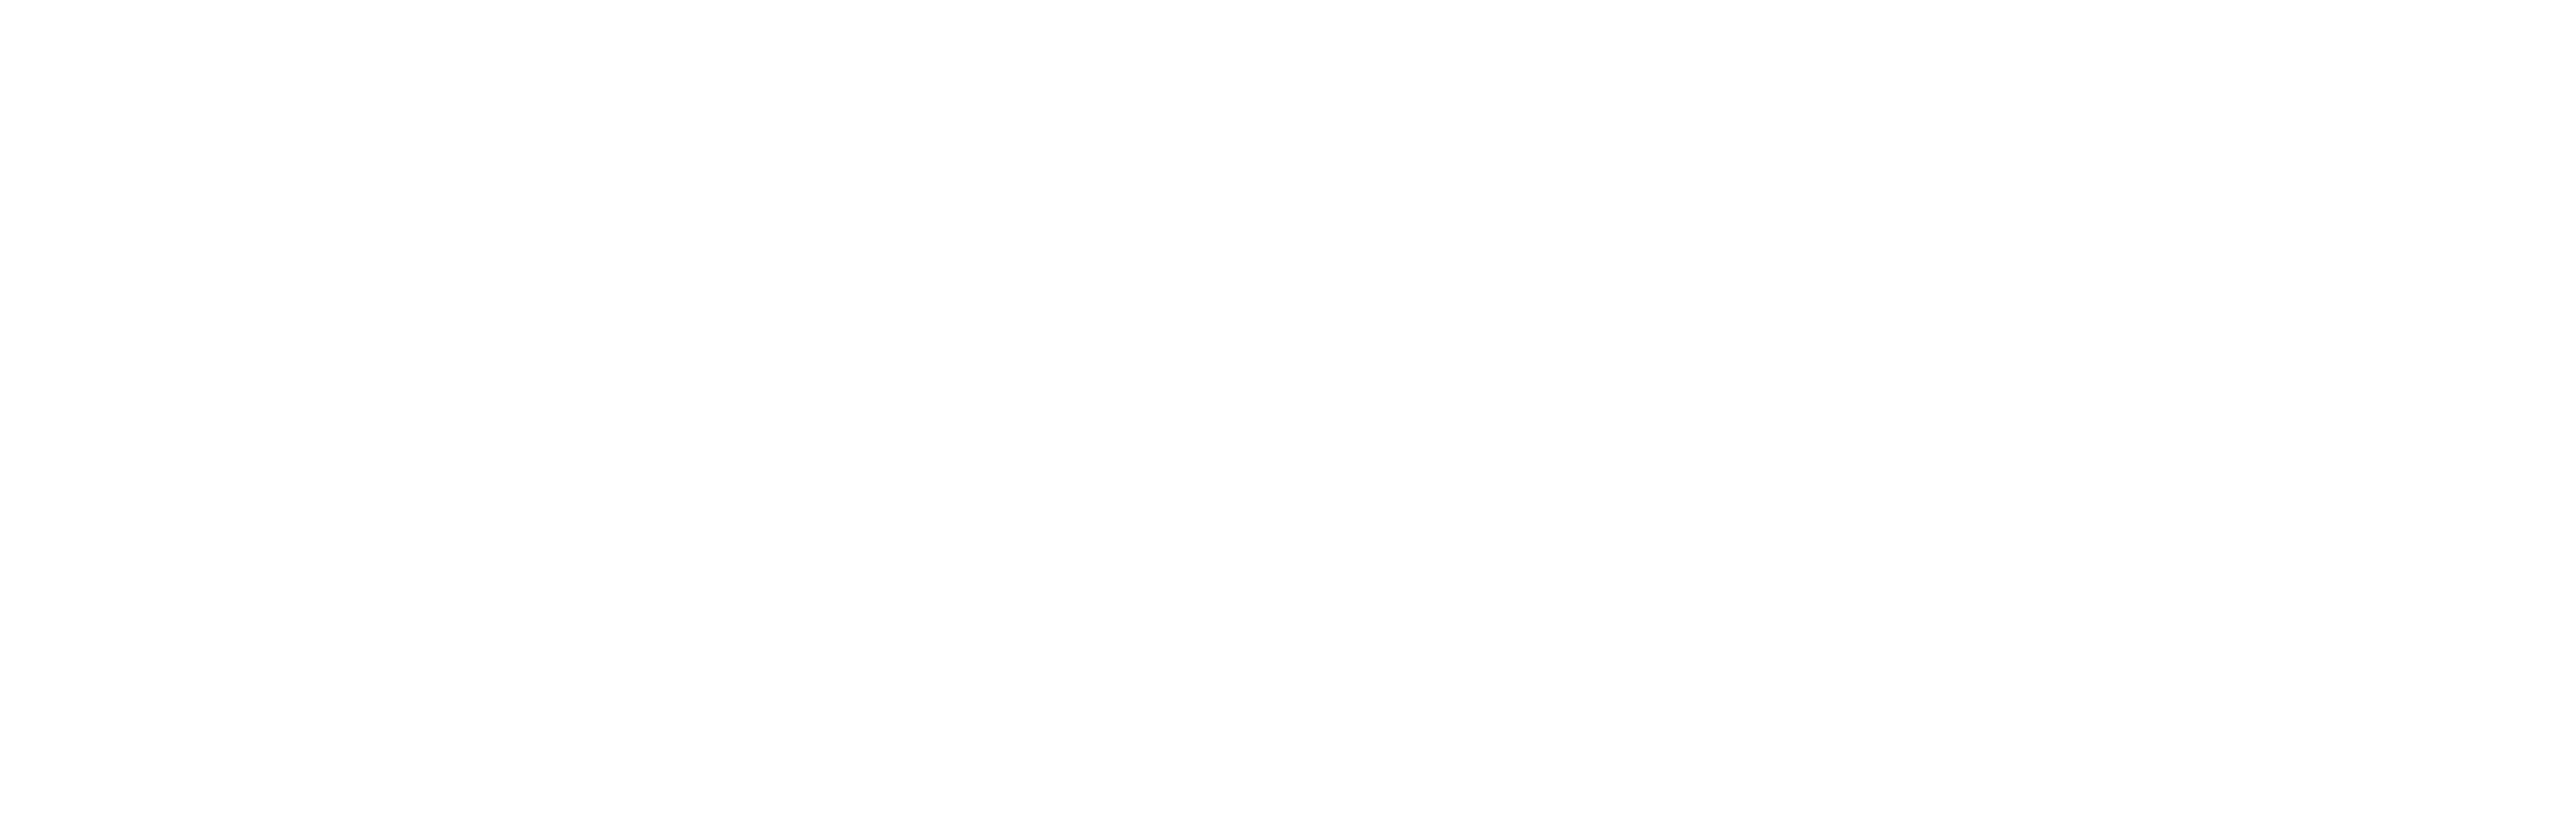 Ontario Health Team of Northumberland logo